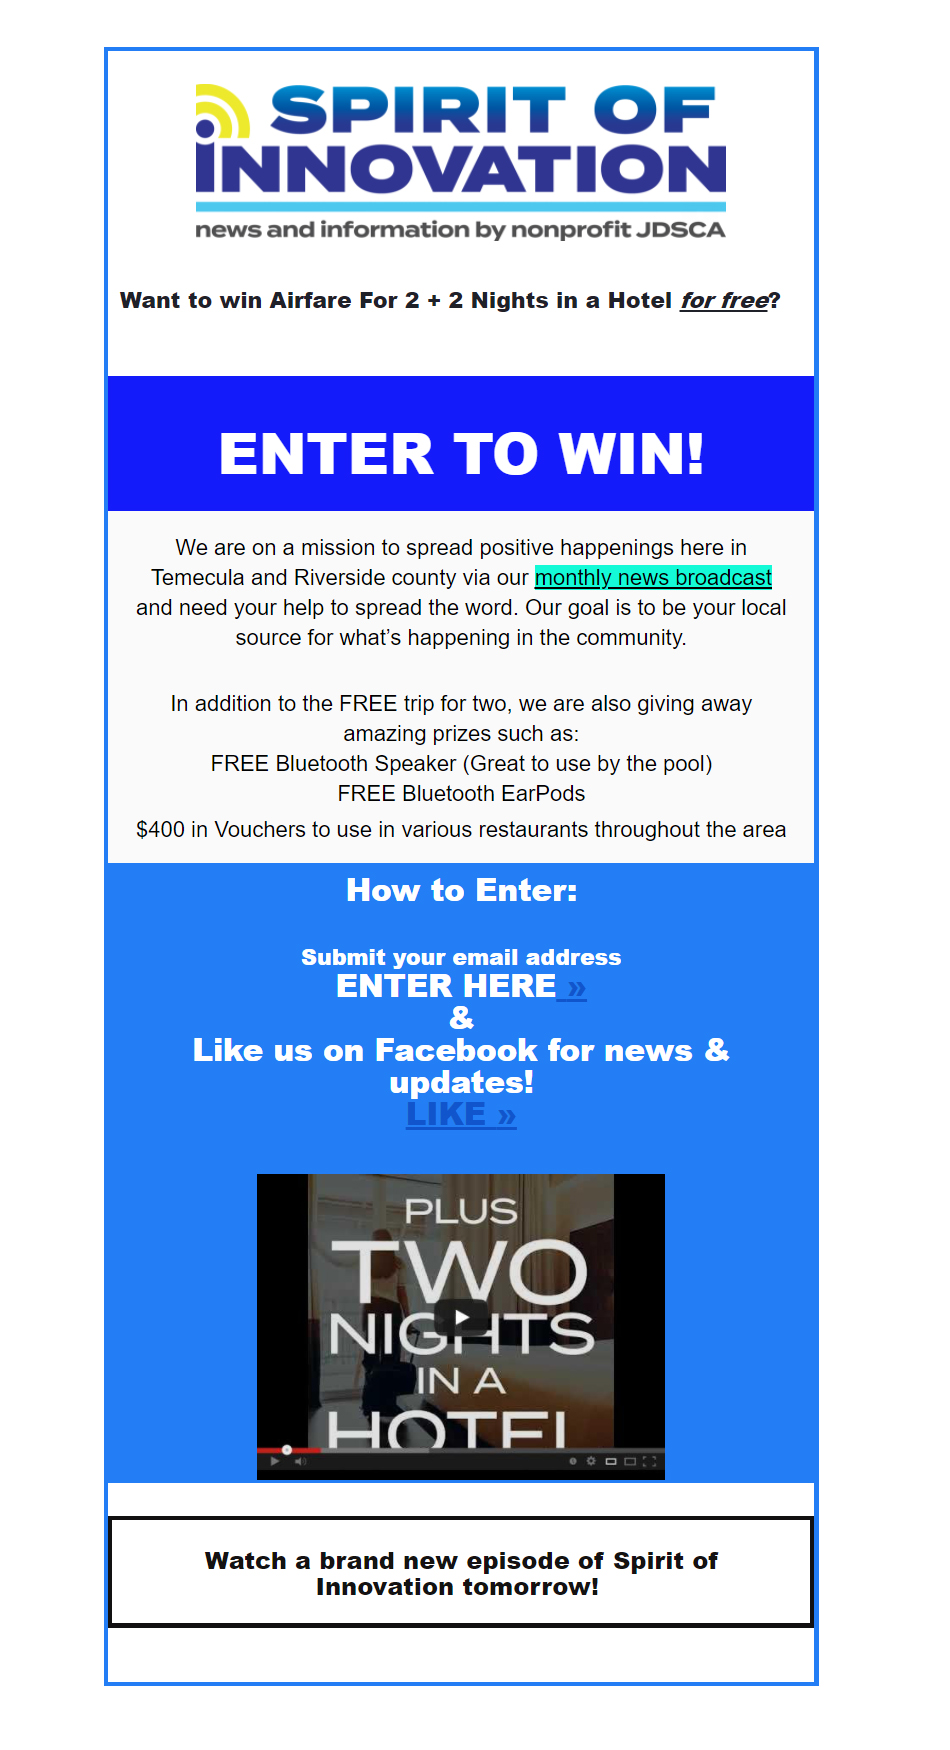 Spirit of Innovation FREE trip giveaway